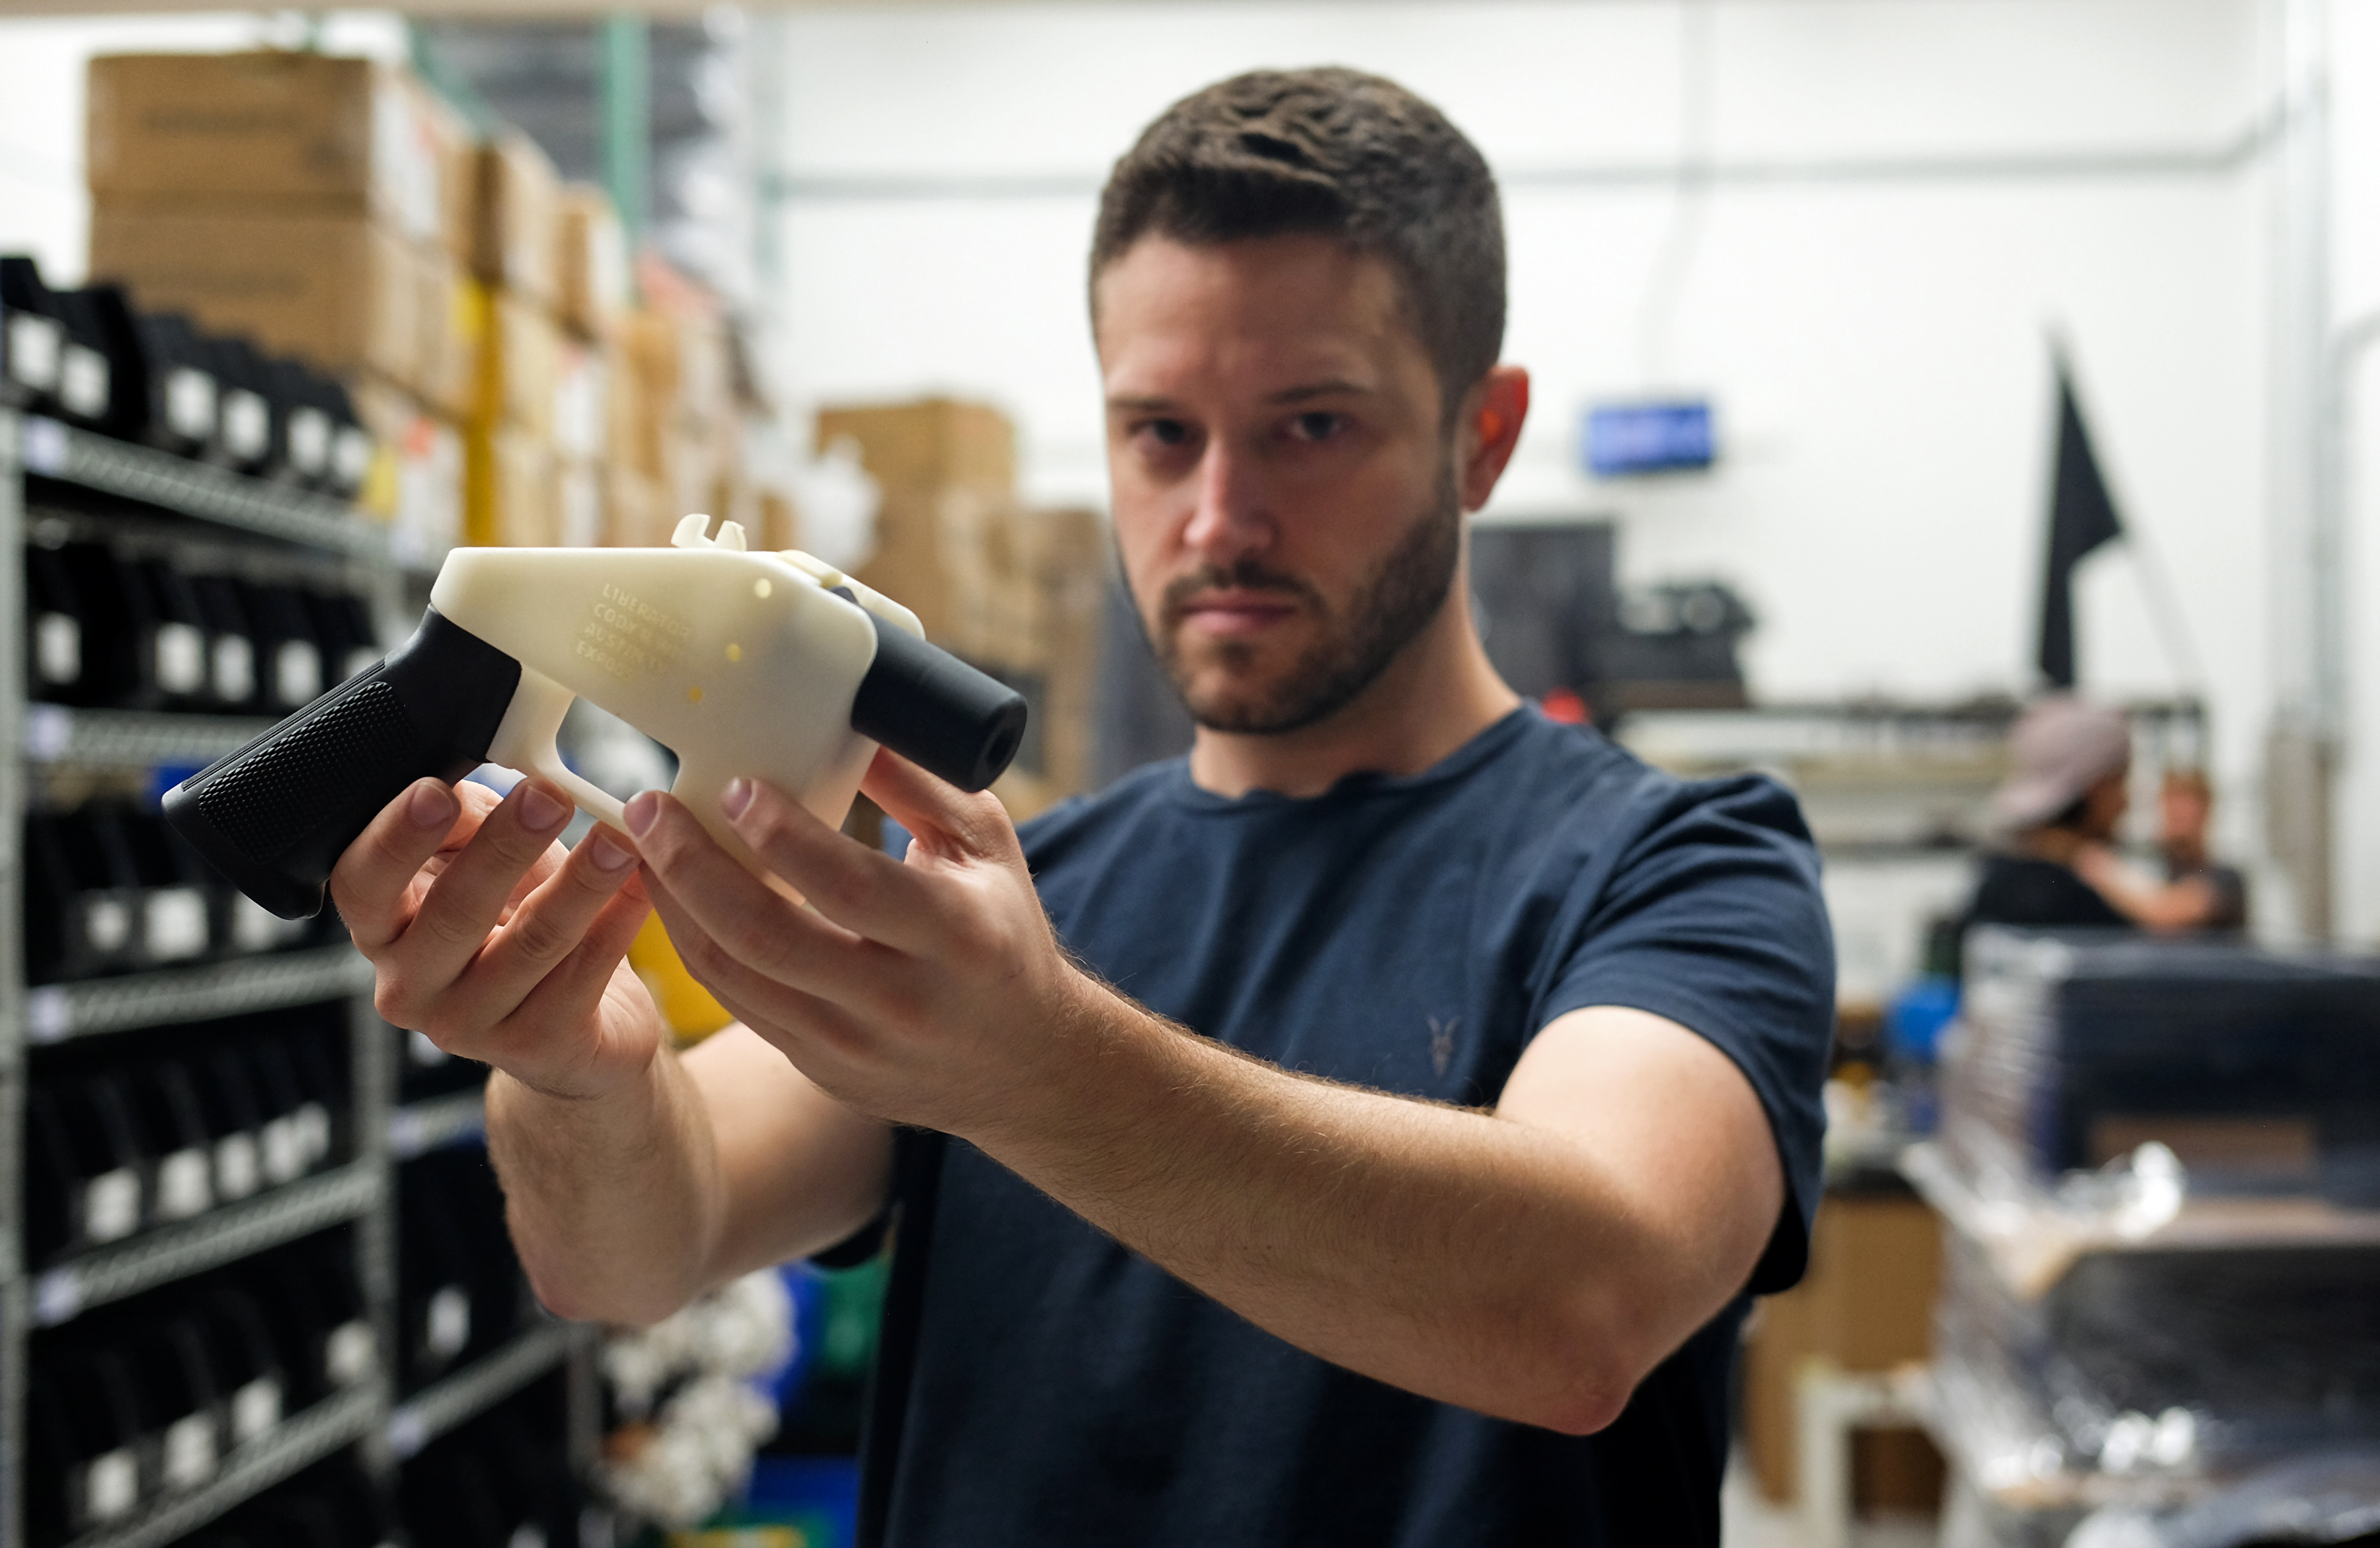 3d Printed And Cnc Milled Guns Nine Questions You Were Too Afraid The Circuit Is Designed To Produce A Gun Using Technology Of Enlarge Cody Wilson Owner Defense Distributed Company Holds Called Liberator In His Factory Austin Texas On August 1